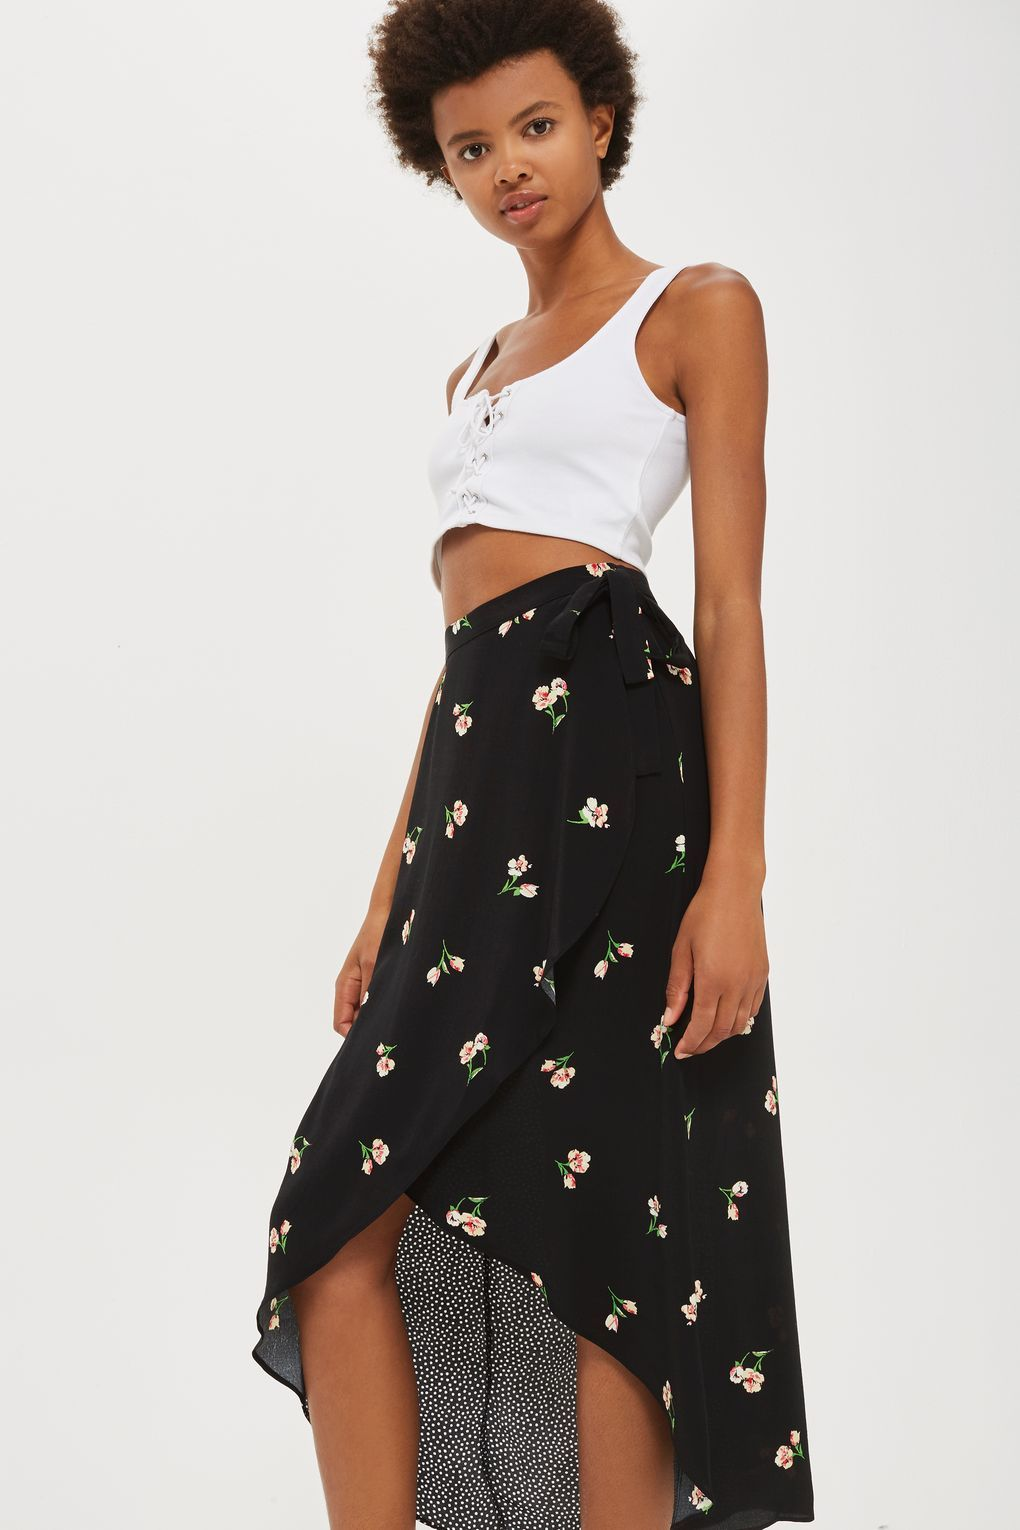 323c39de184a86 From its pretty floral pattern to its stylish wrap front, this flattering black  maxi skirt is a wardrobe essentials. As suited to parties as it is for ...